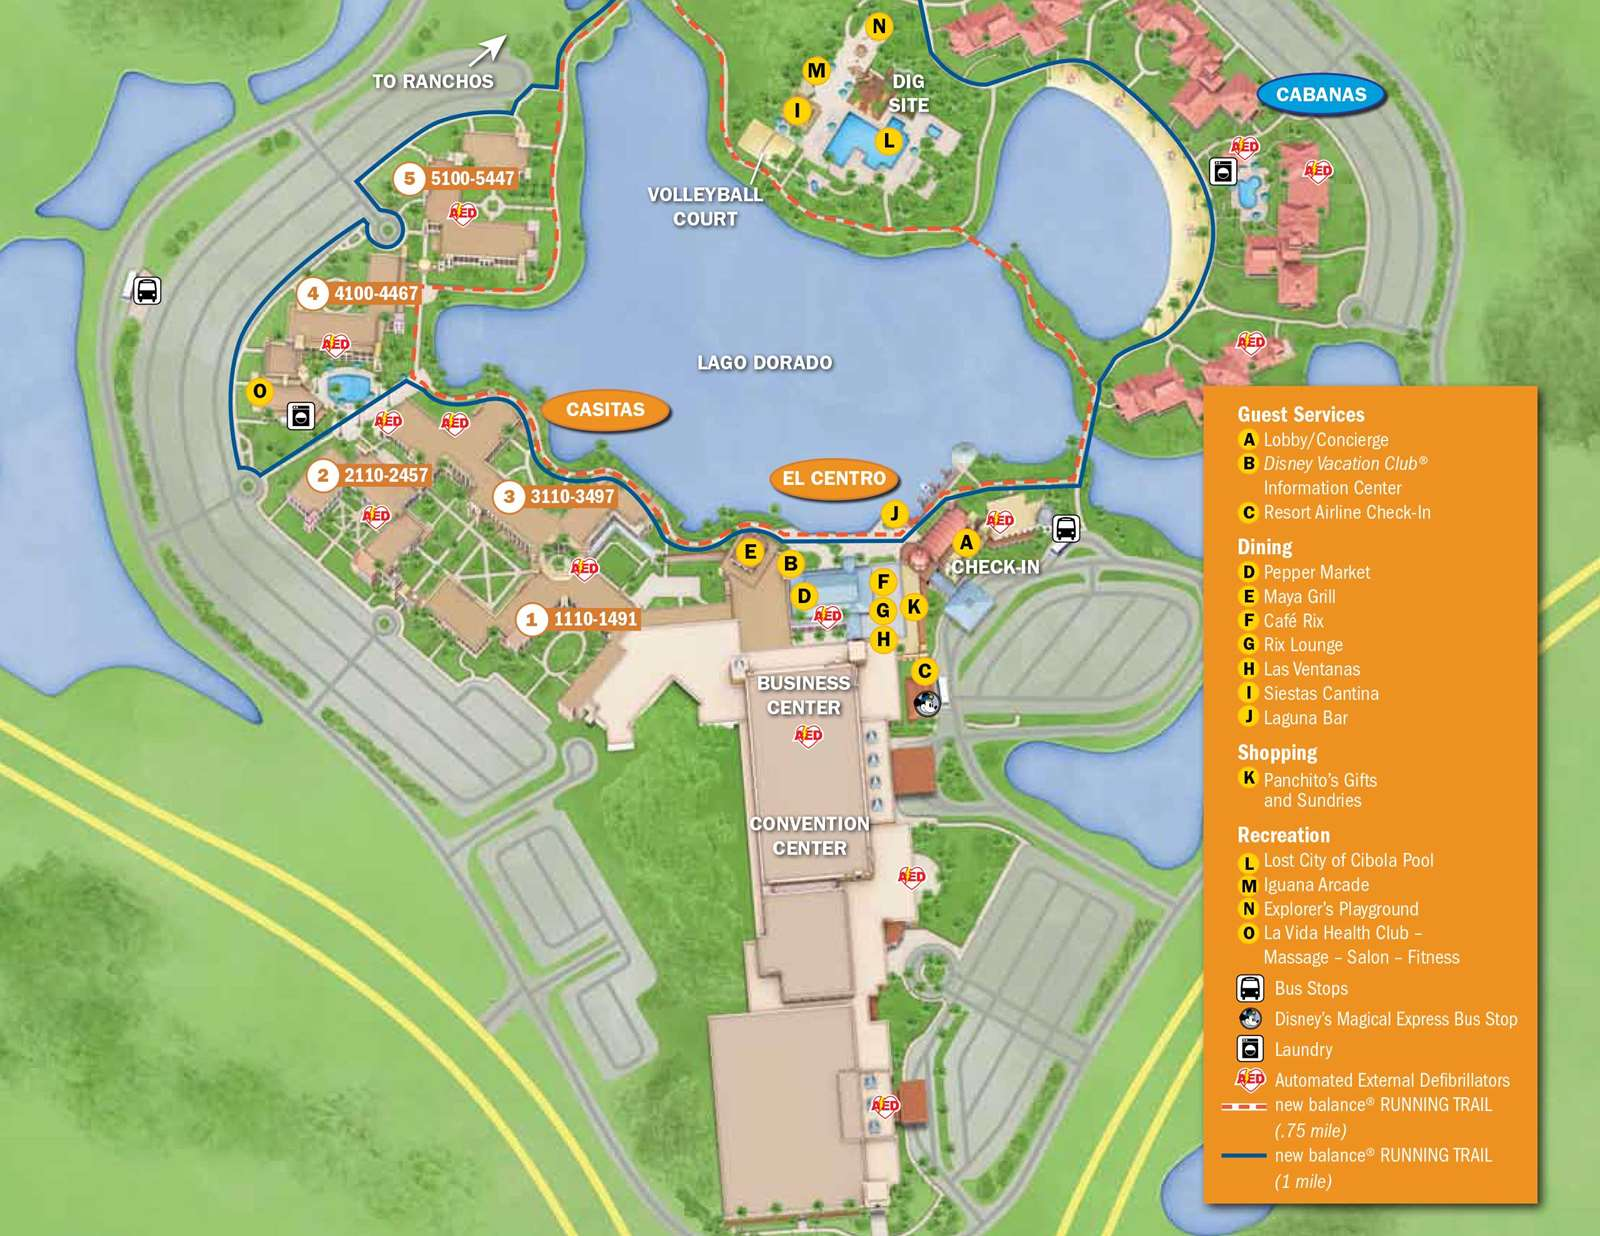 Grand Floridian Map April 2017 Walt Disney World Resort Hotel Maps   Photo 25 of 33